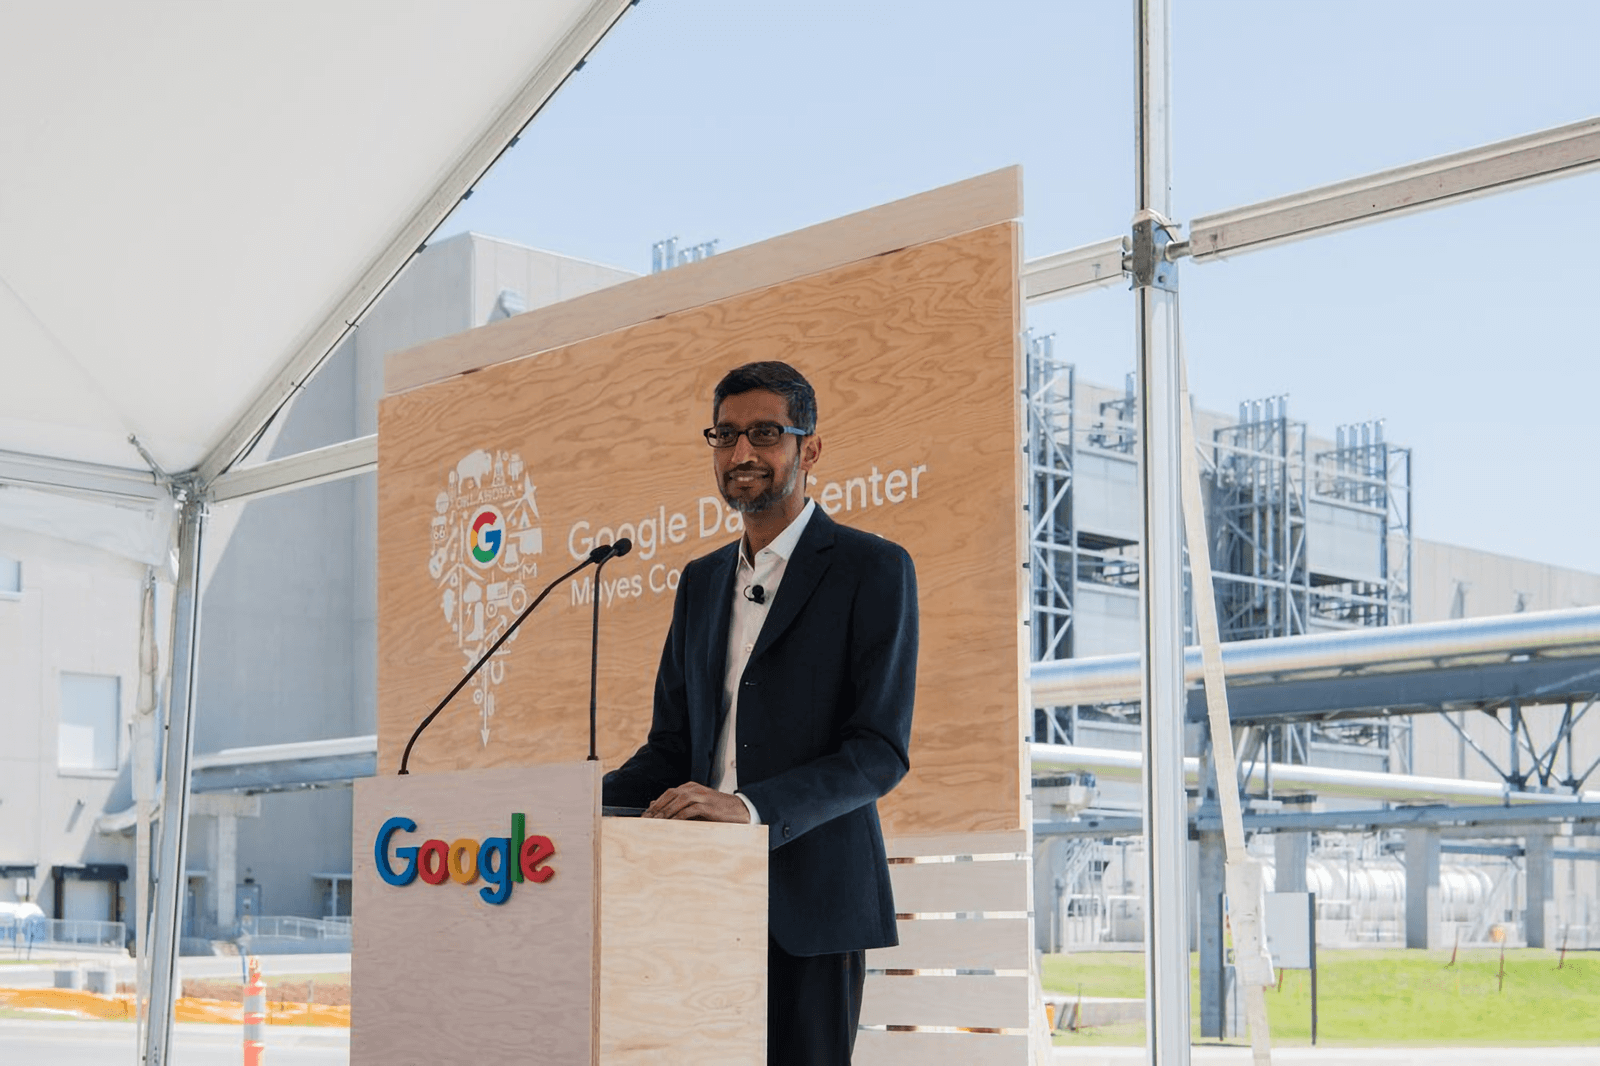 Google will invest over $10 billion on US offices and data centers in 2020